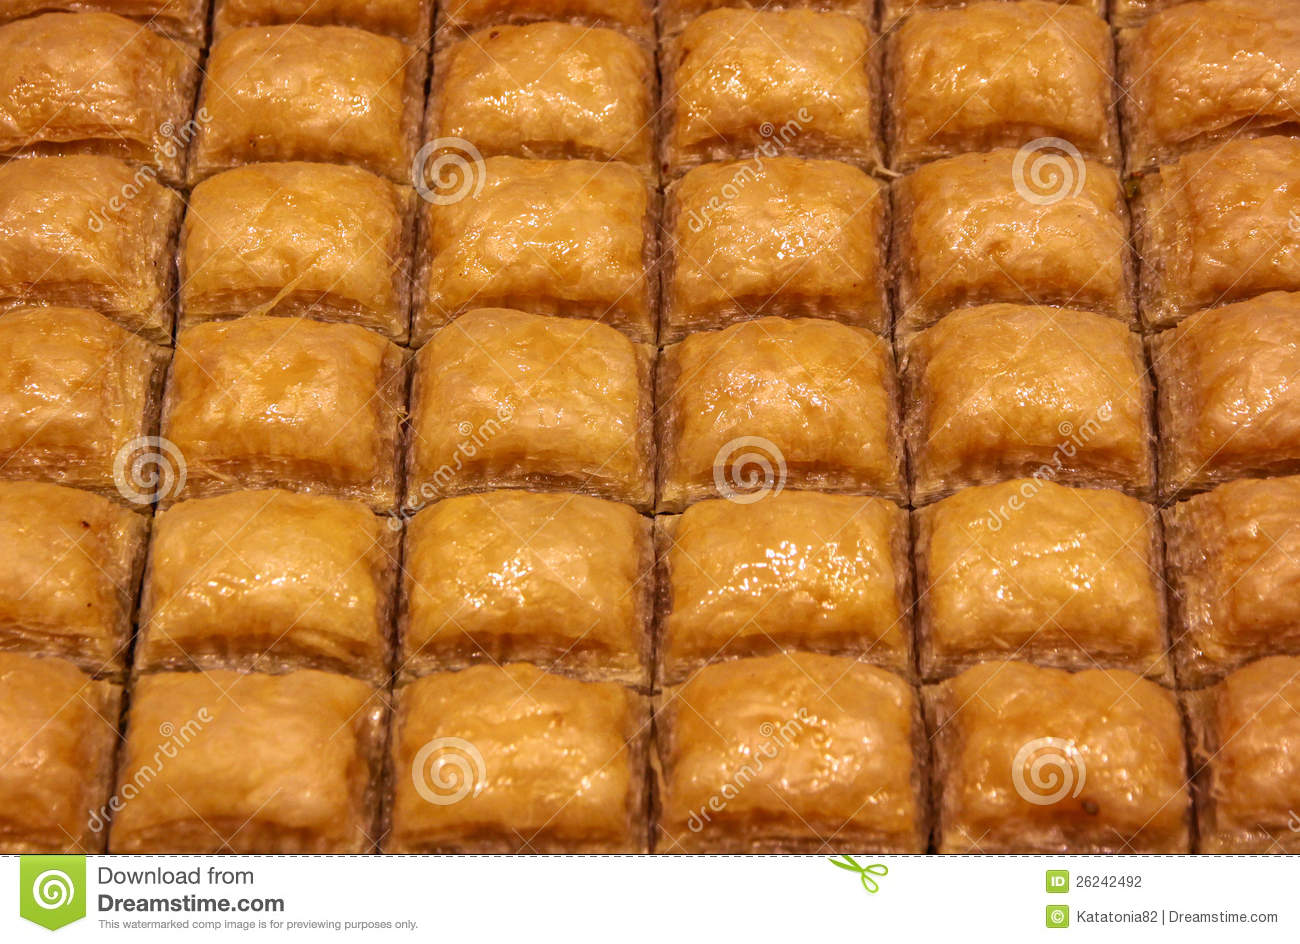 Baklava turque traditionnelle photographie stock image for Maison traditionnelle turque